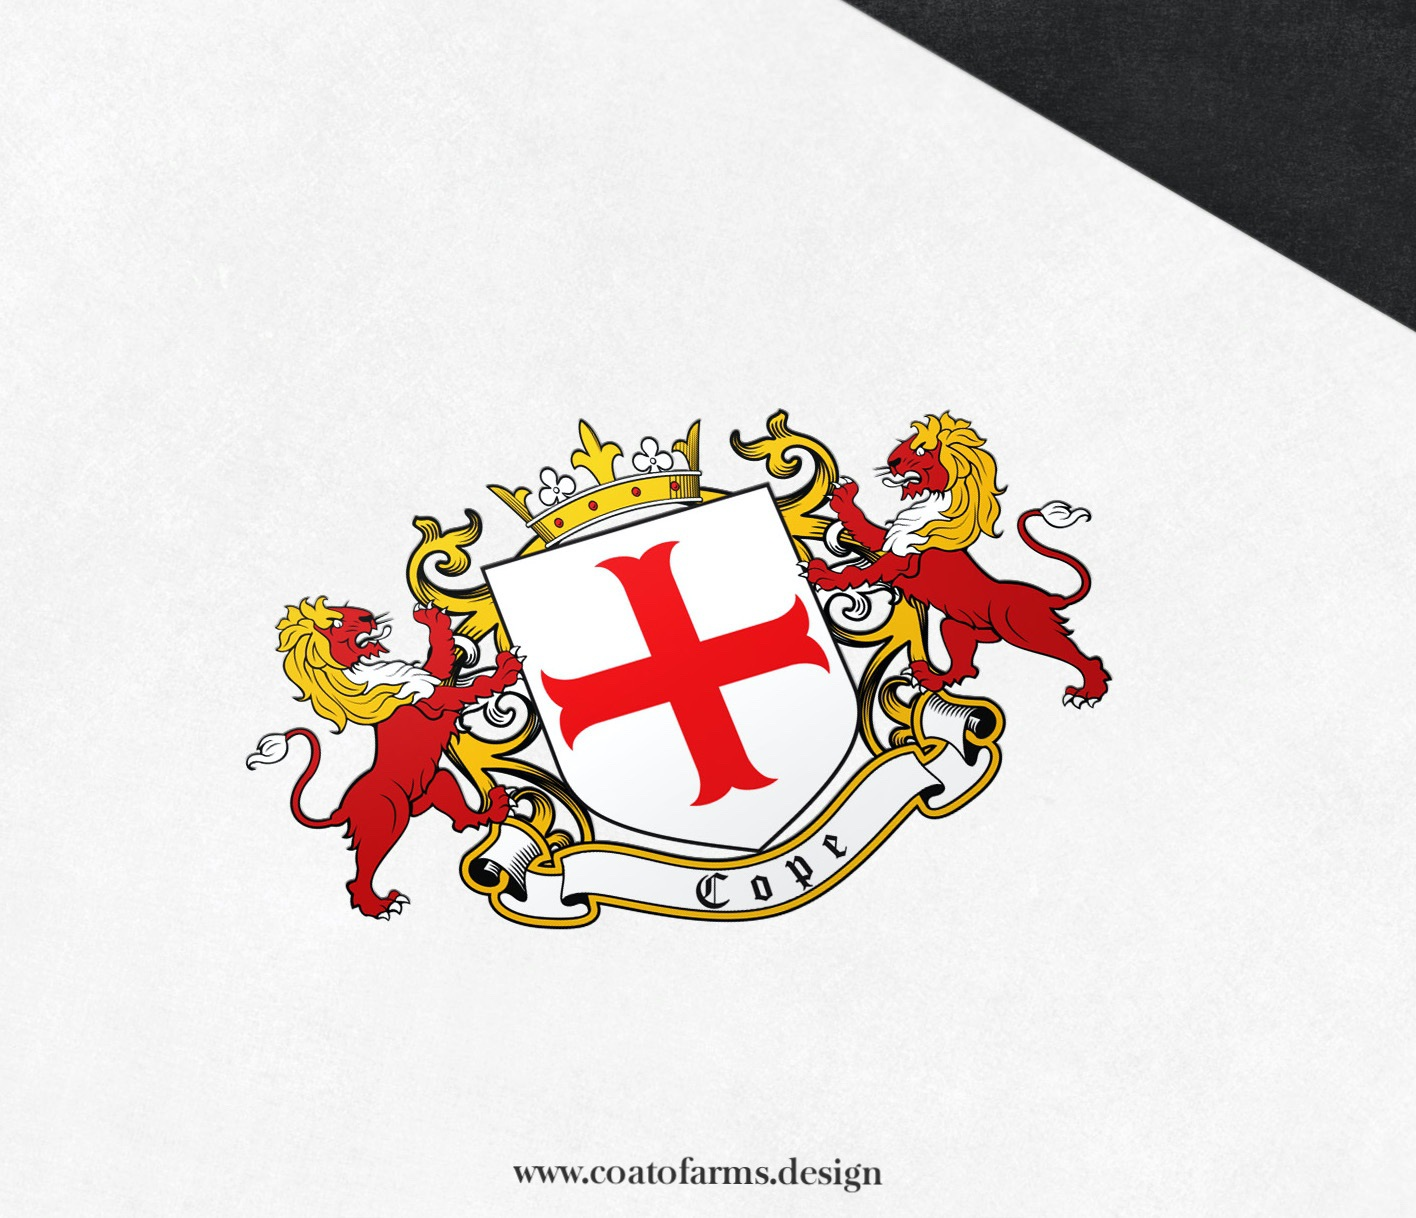 Coat of arms I designed for a small family company Cope & Sons from the United Kingdom